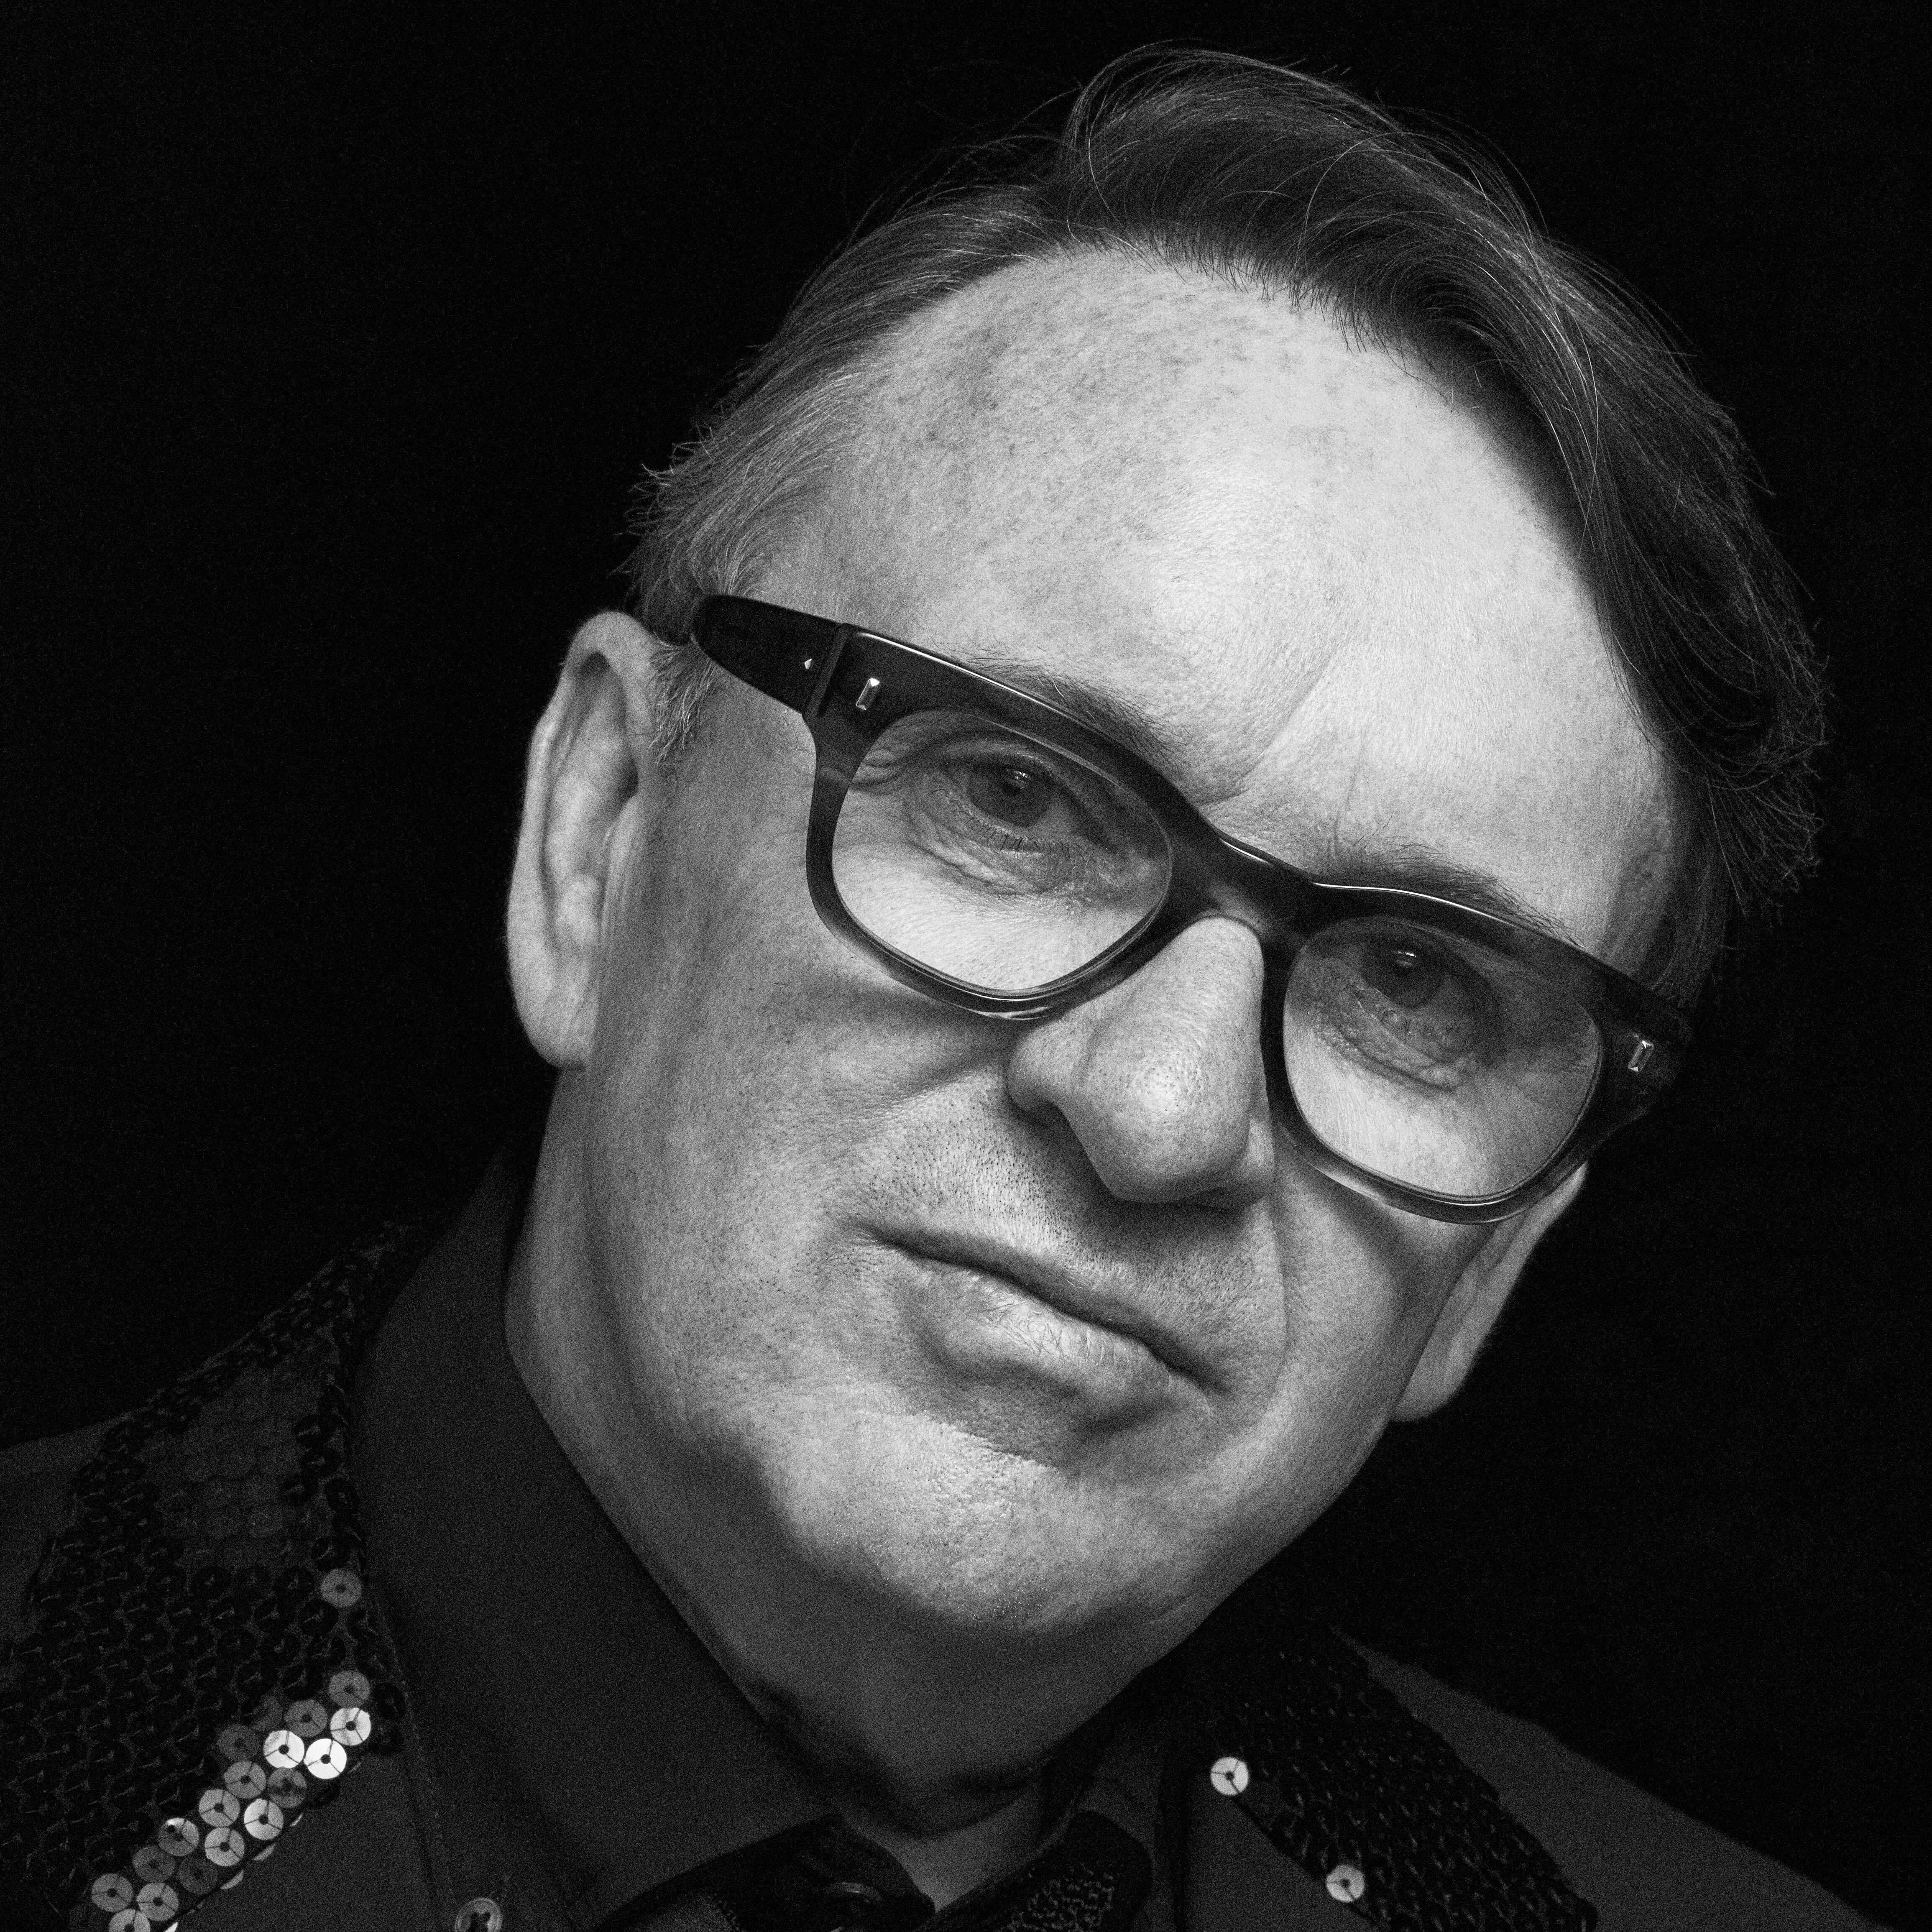 CHRIS DIFFORD WITH SPECIAL GUEST BOO HEWERDINE